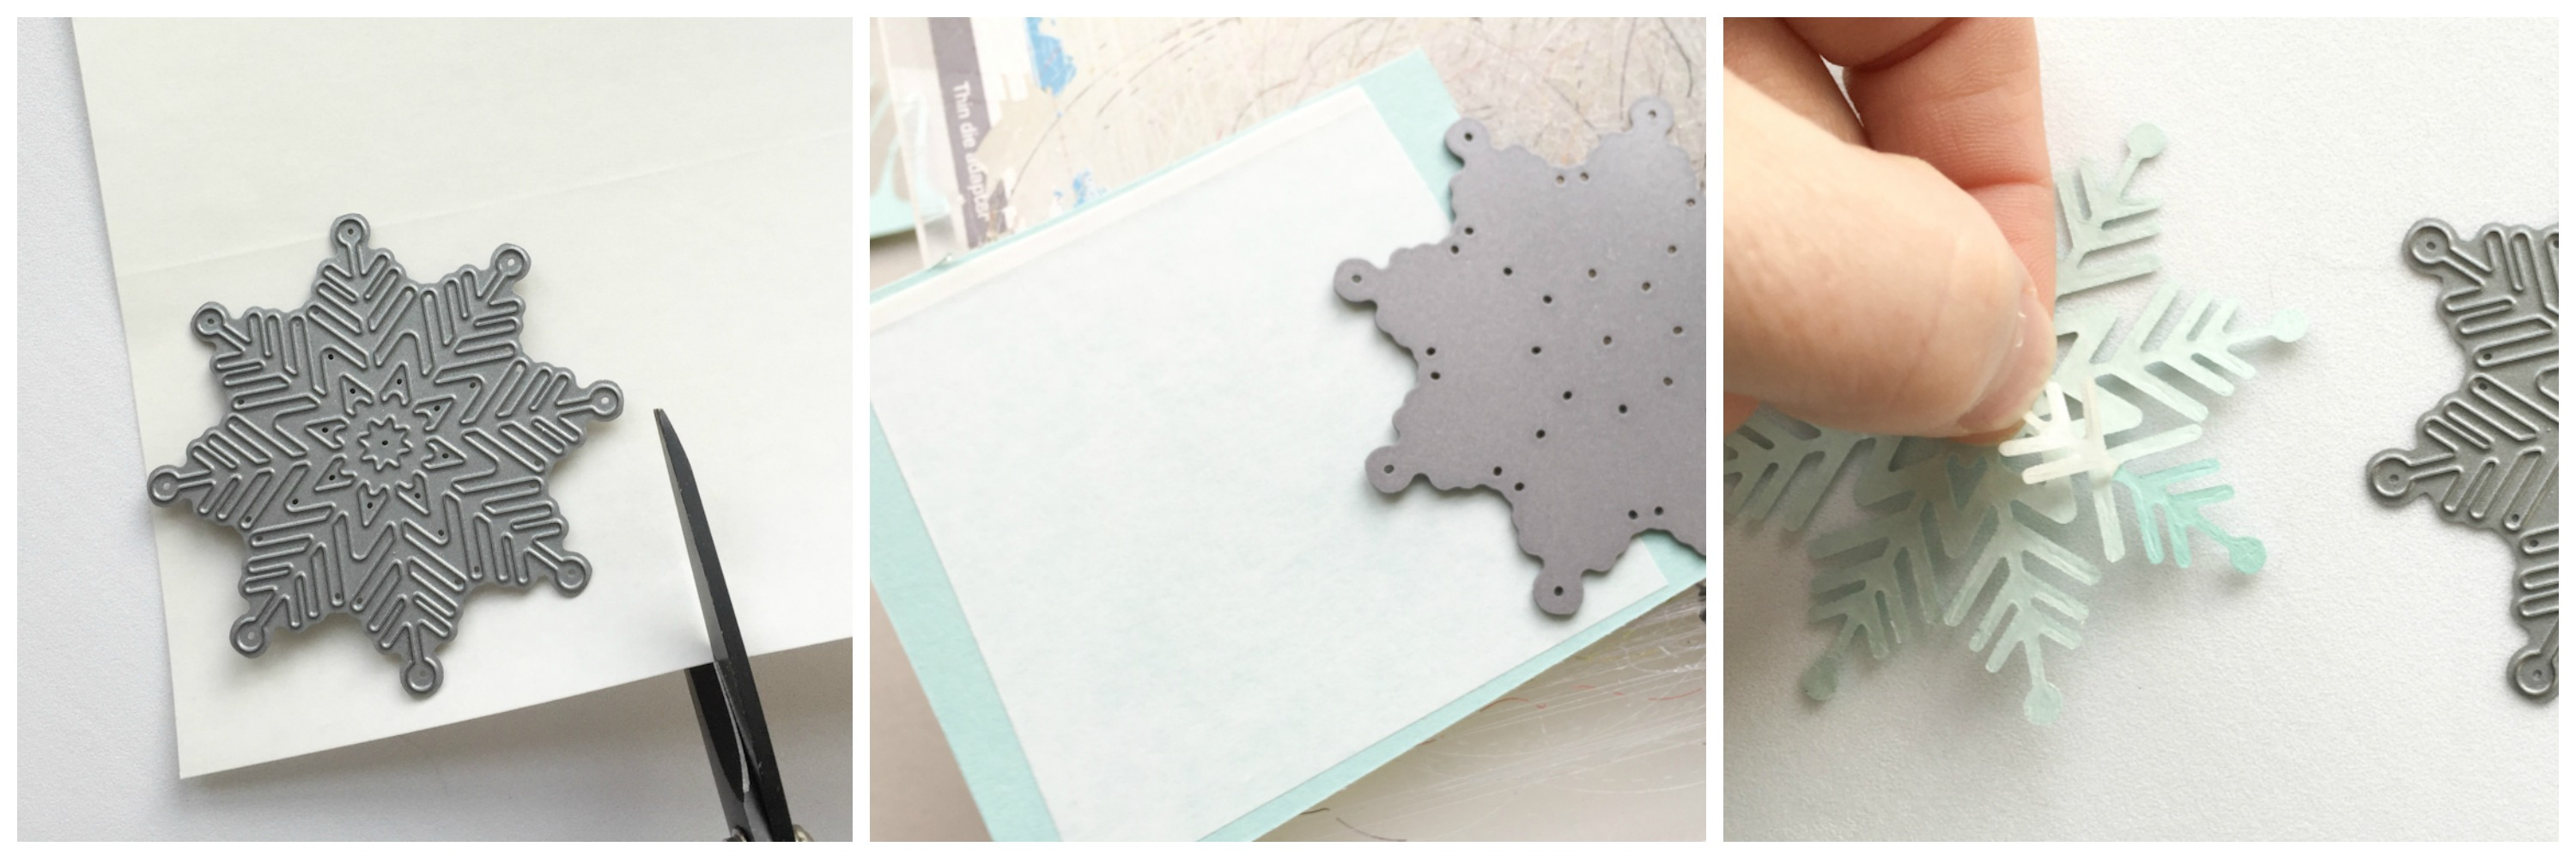 Overview of Paper Craft Adhesive